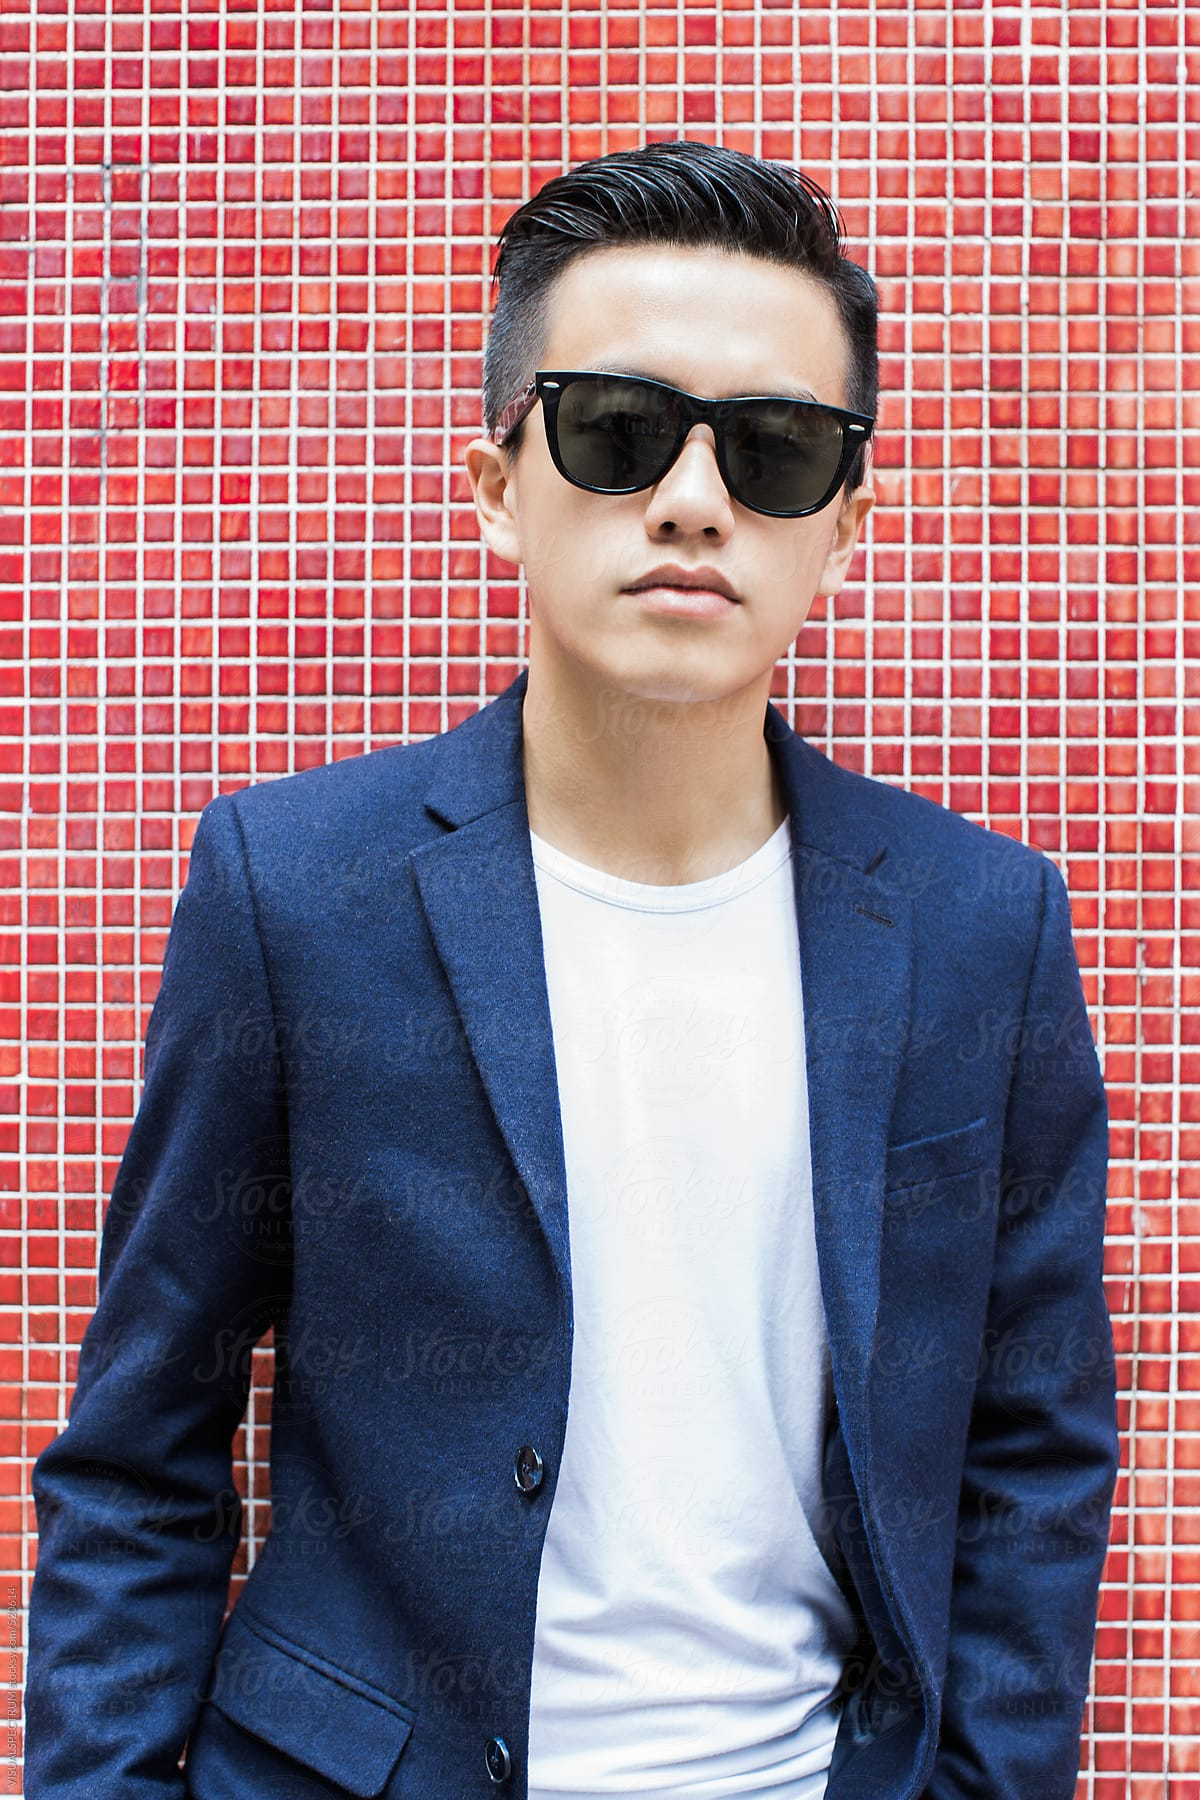 d0a26d403 Portrait of Young Asian Man Wearing Blazer and Black Sunglasses Standing in  Front of Red Wall